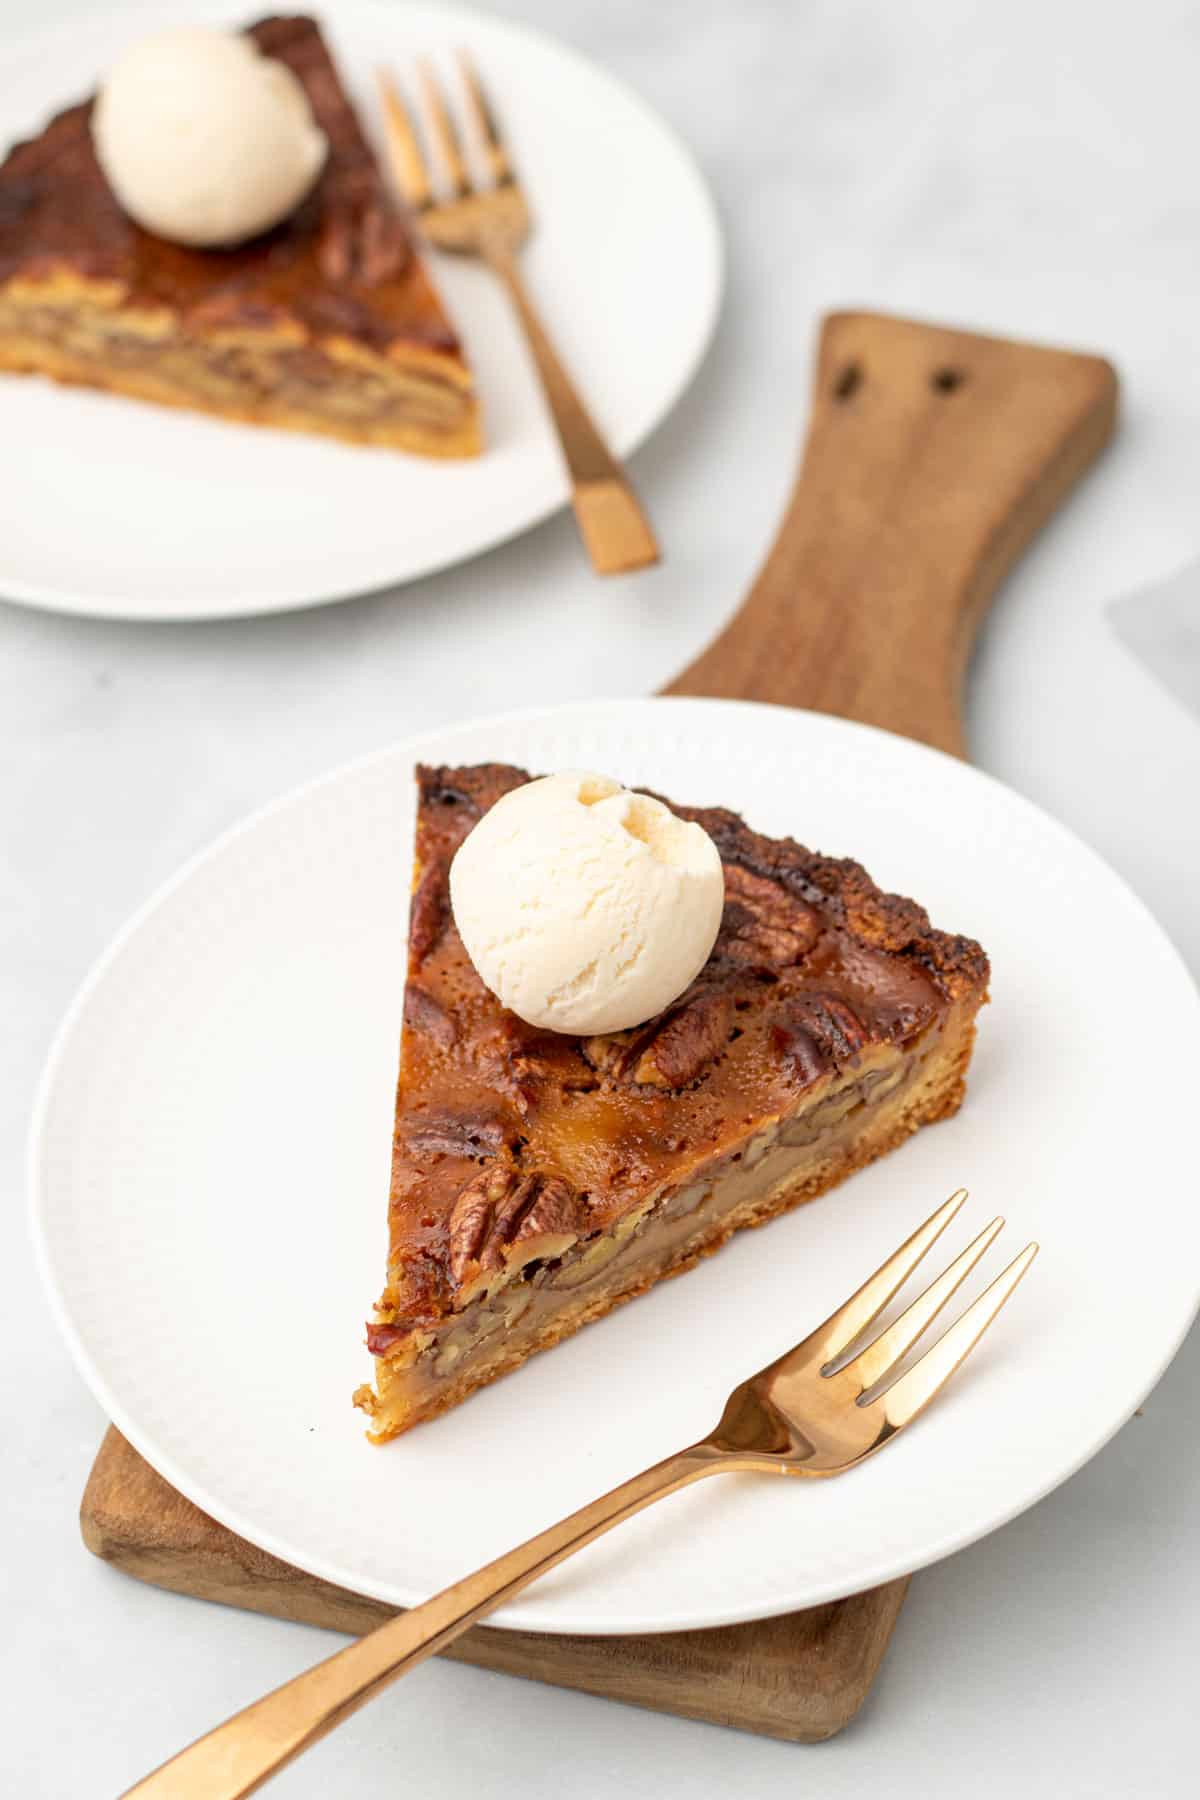 A slice of pecan pie on a plate with a scoop of vanilla ice cream on top next to a gold fork